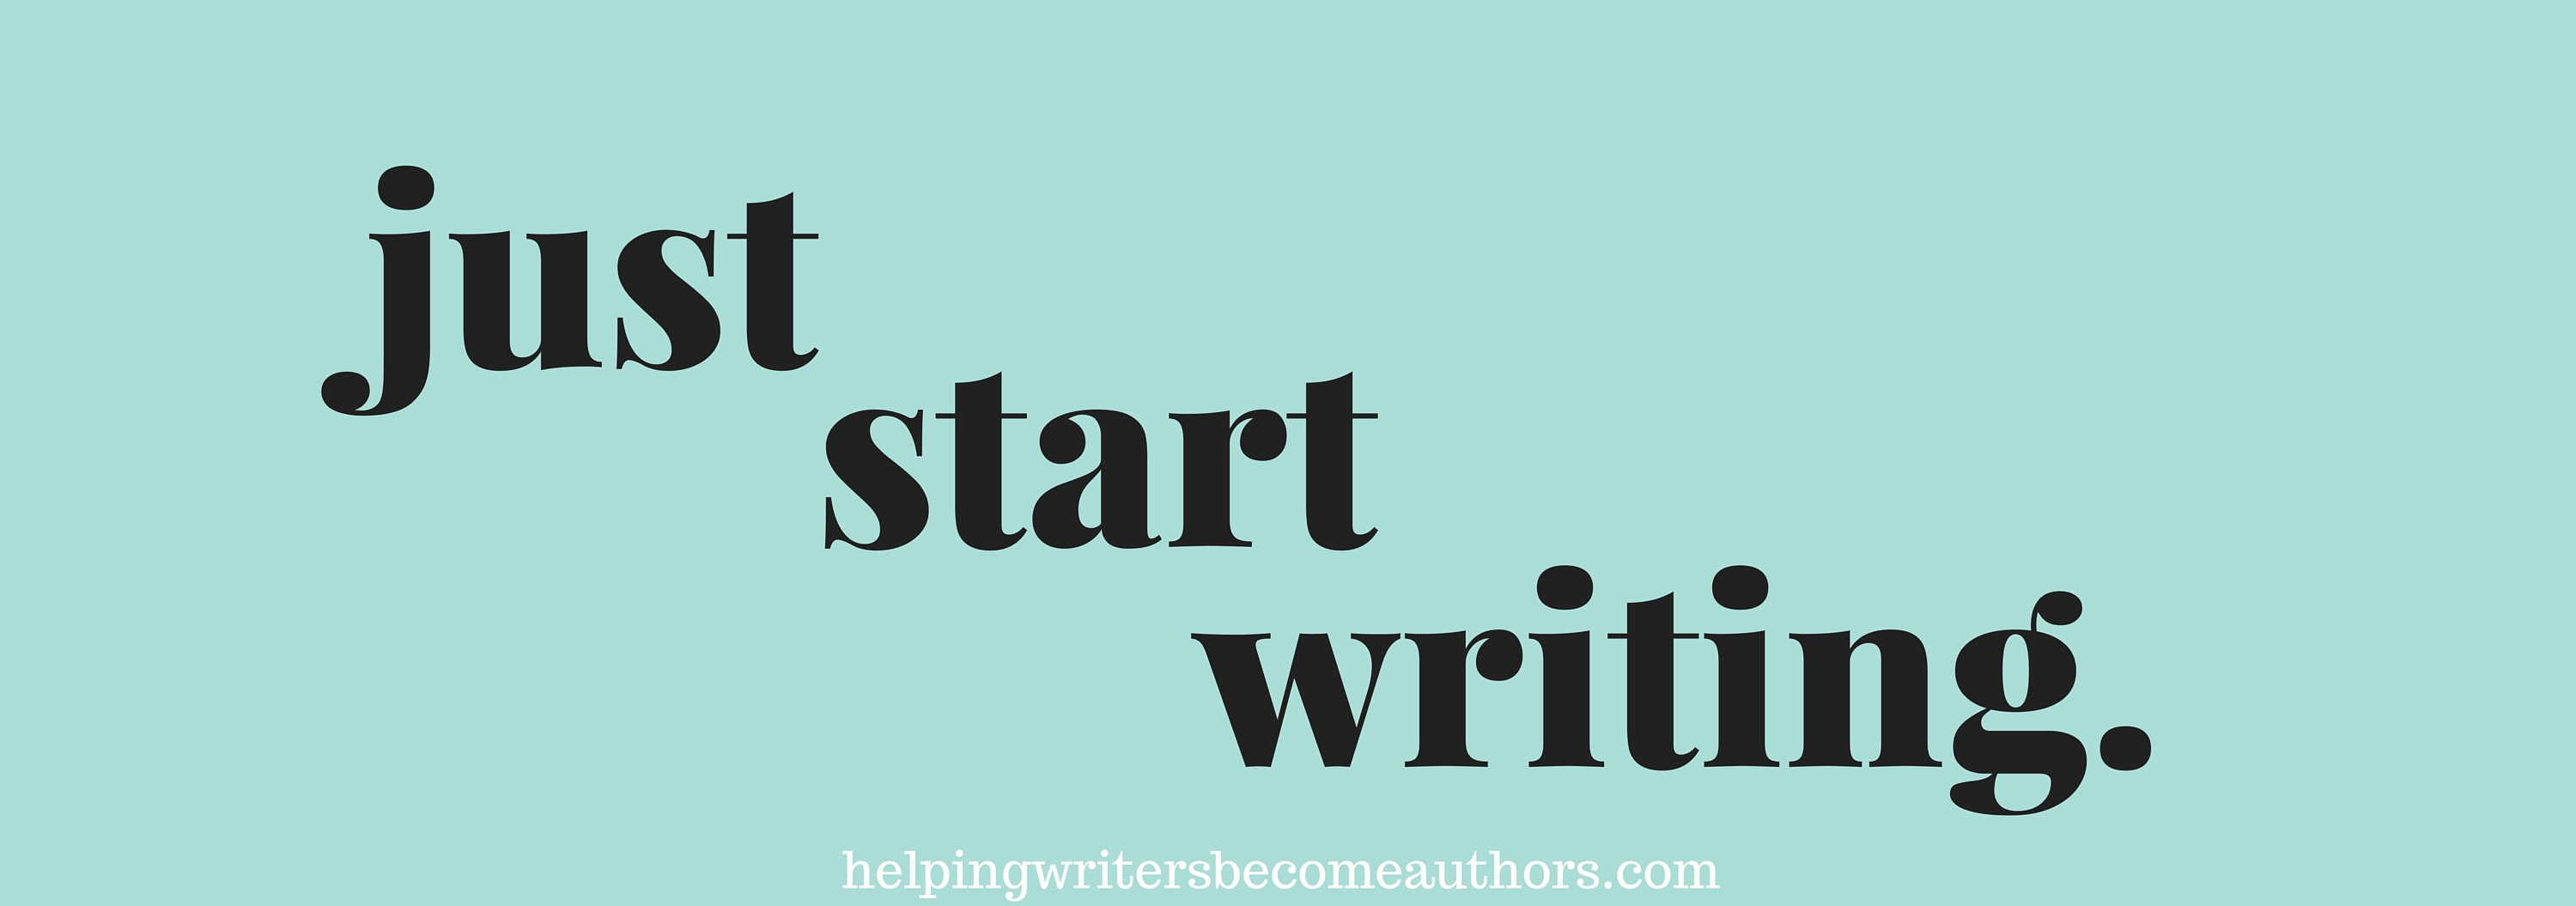 Just Start Writing.